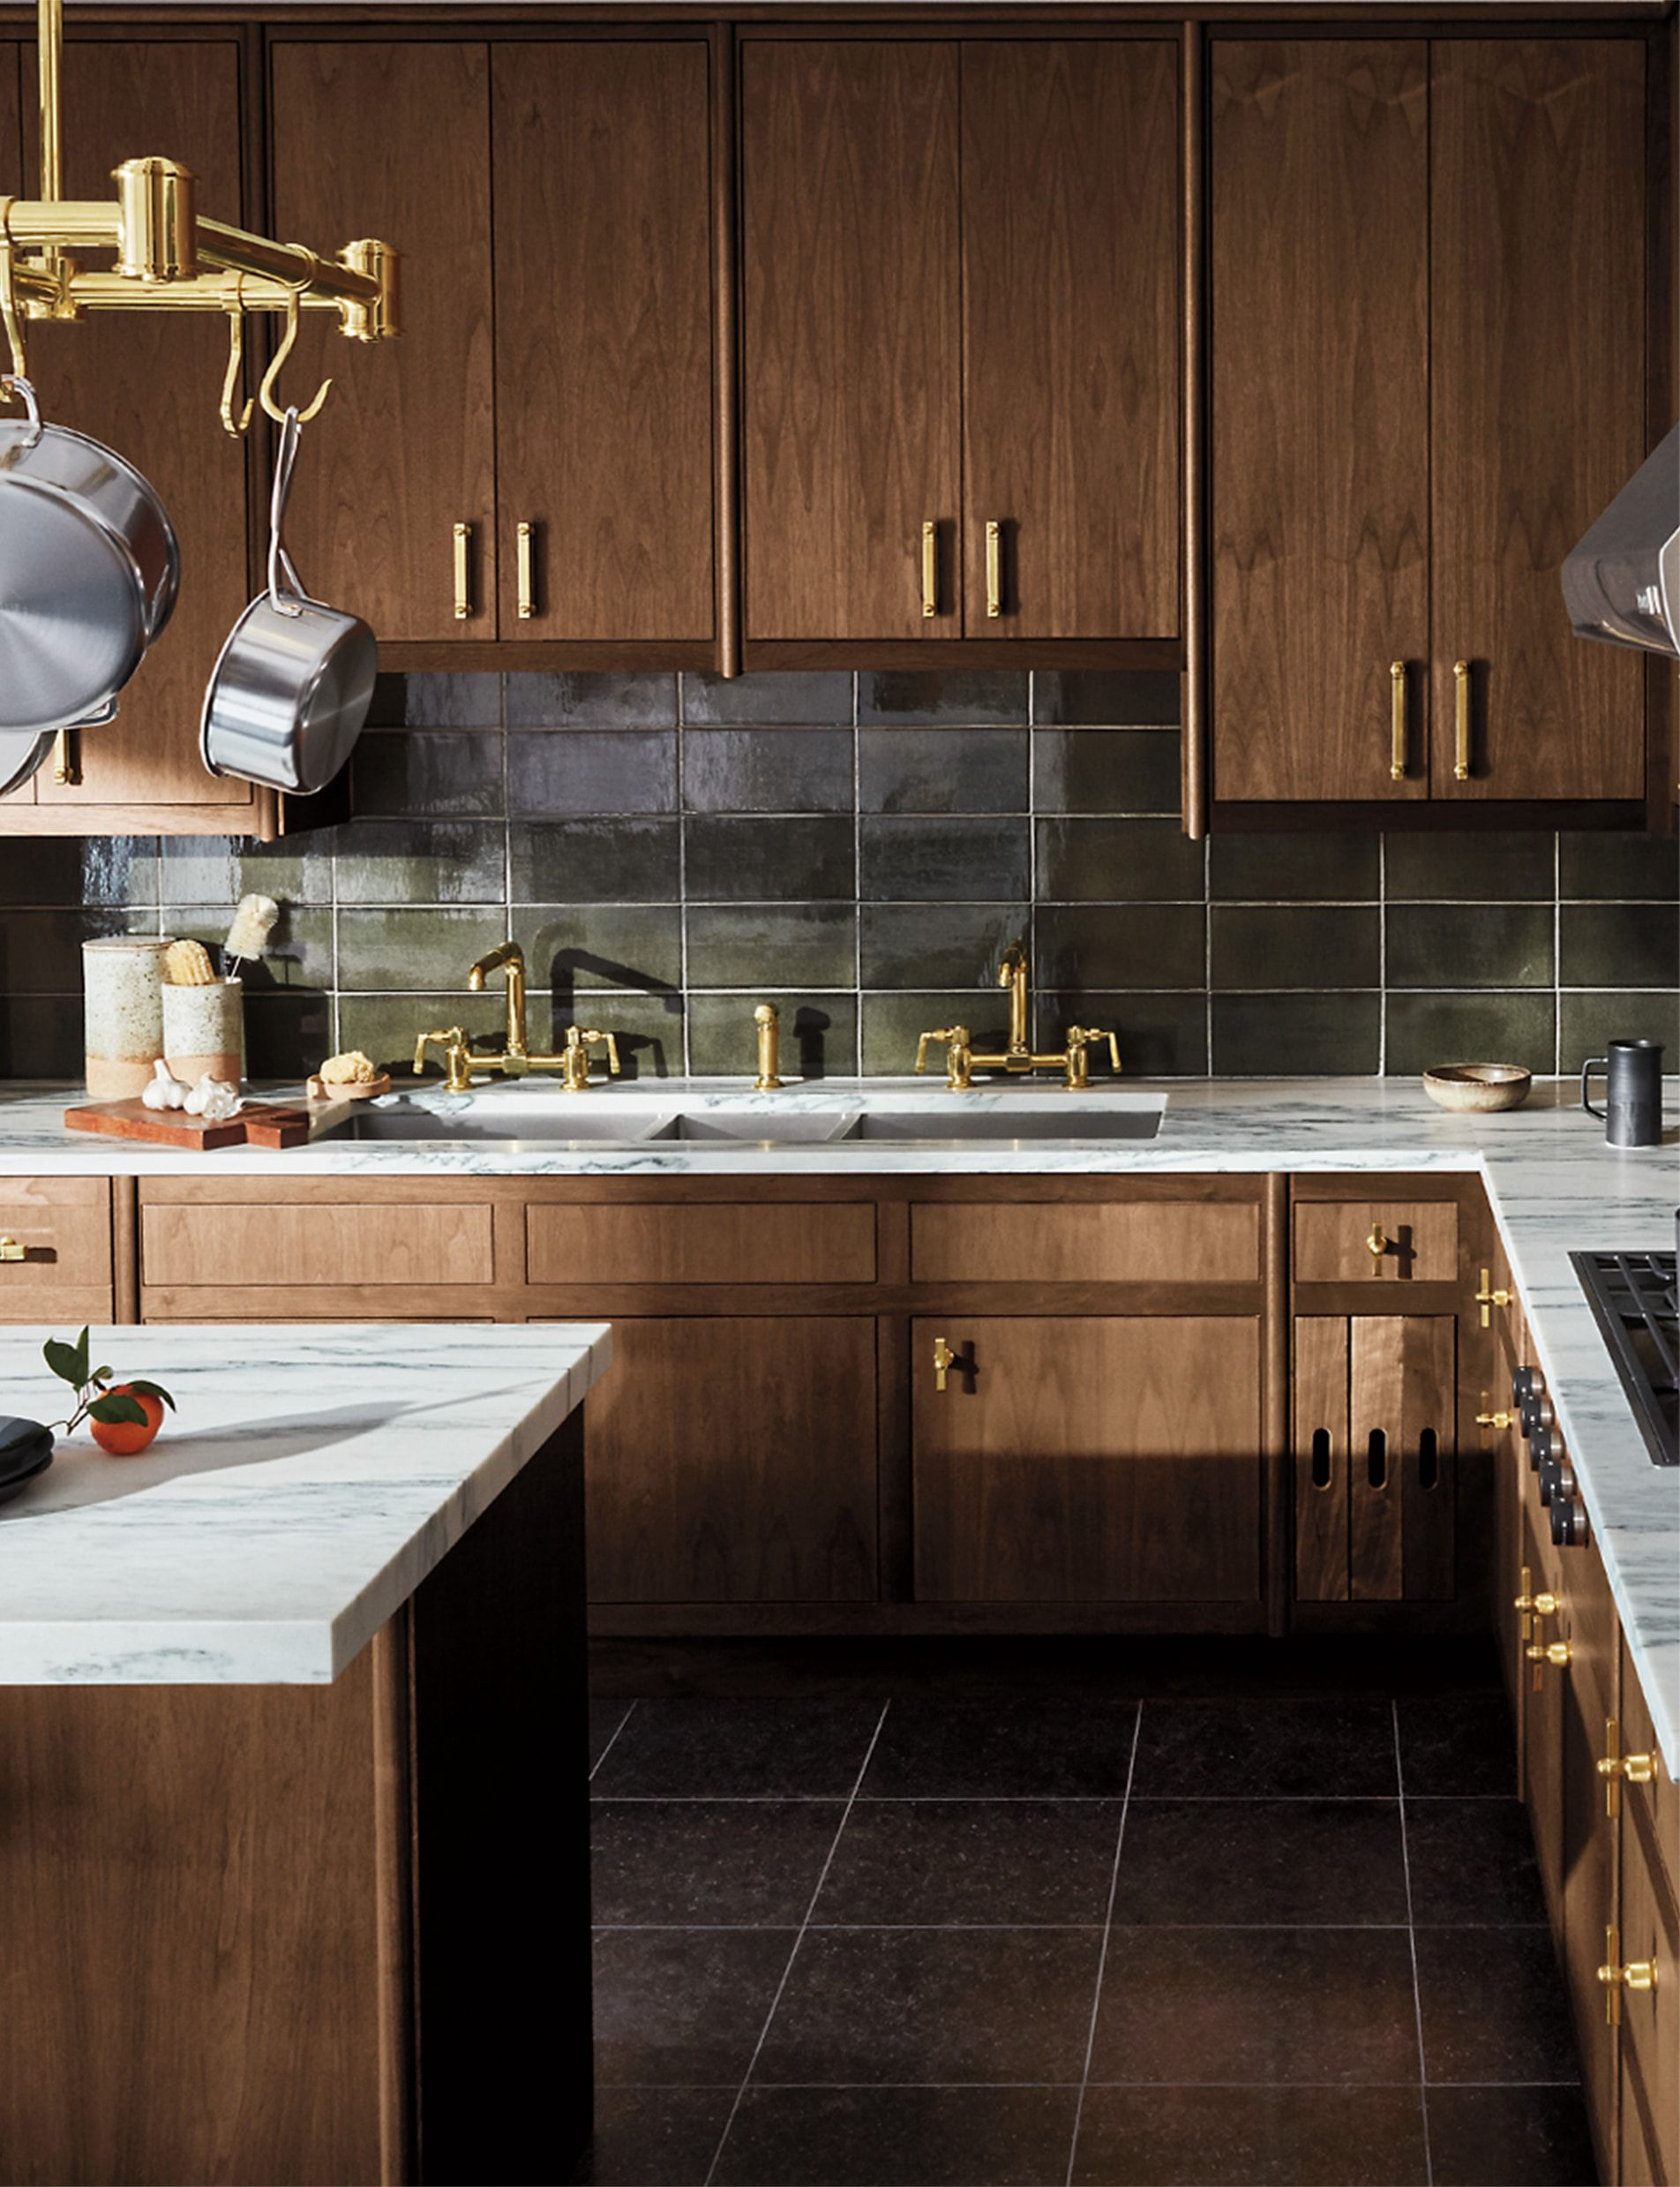 Cabinetry Collections Waterworks Waterworks In 2020 Waterworks Kitchen Cabinetry Modern Kitchen Design